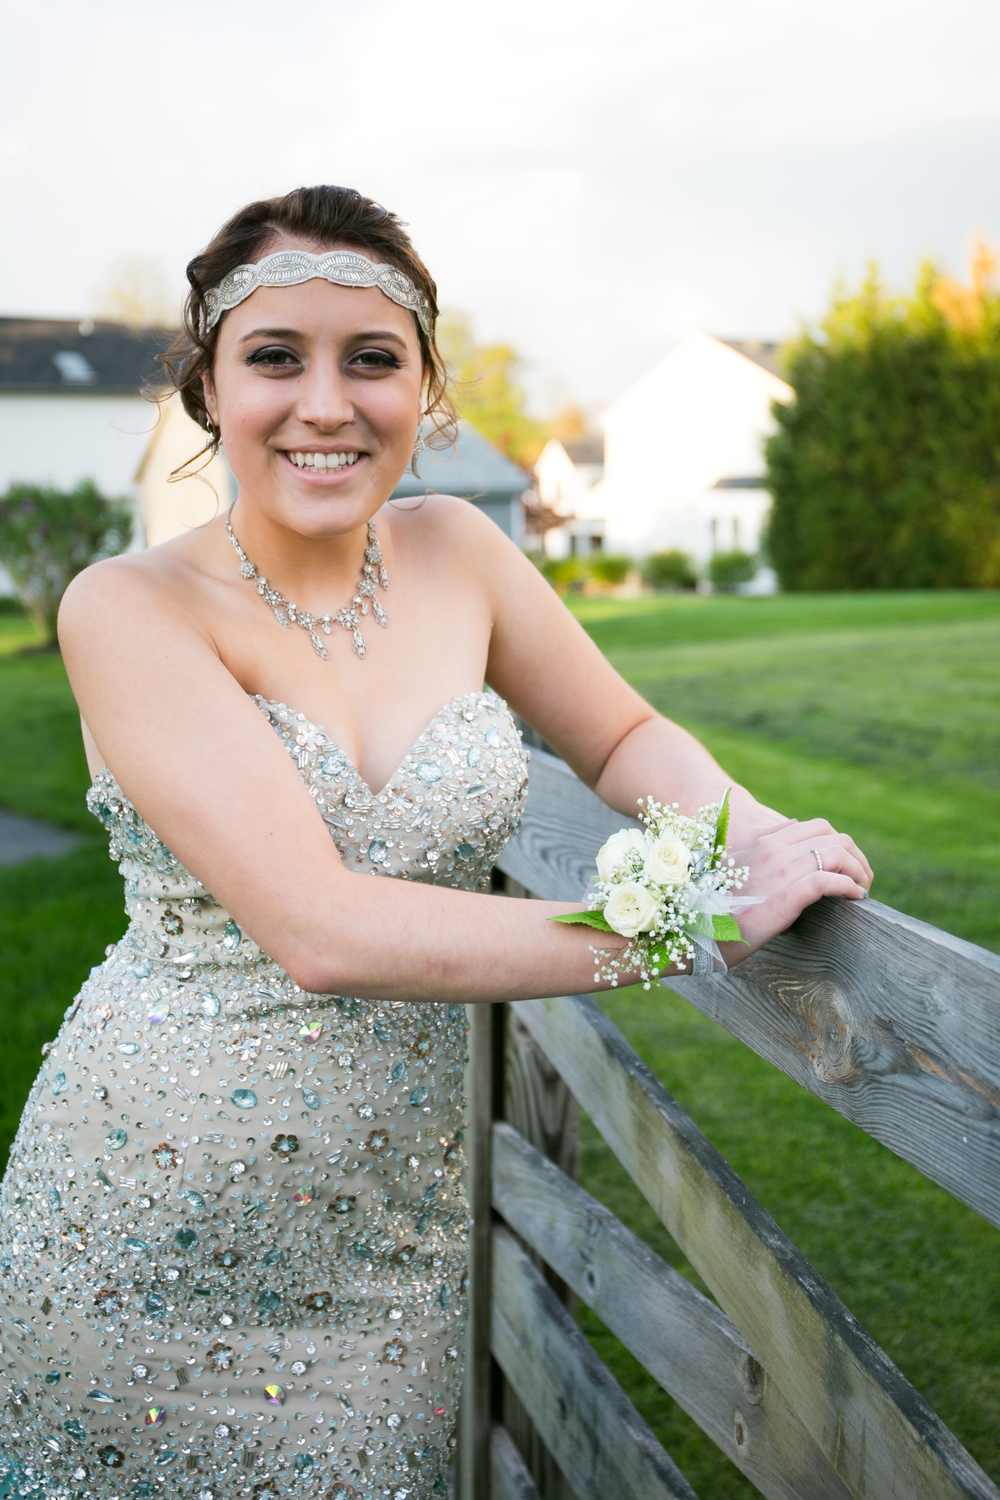 Mount-De-Sales-Pre-Prom-May-2014-82.jpg